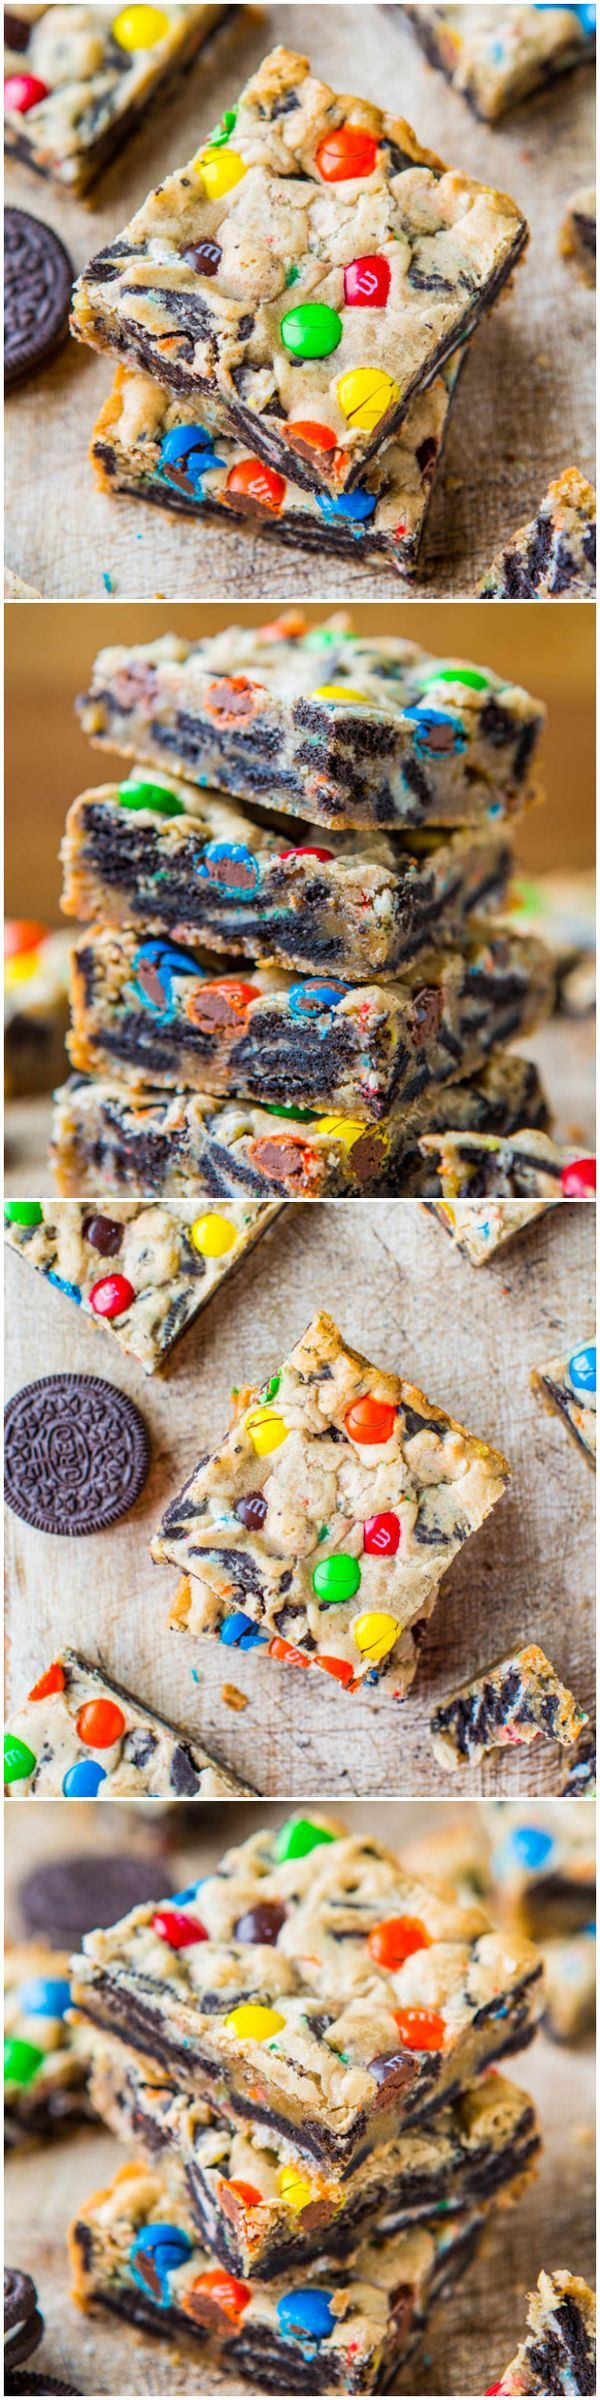 Loaded M&M Oreo Cookie Bars - Stuffed to the max with M&Ms and Oreos! Easy, no-mixer recipe that's ready in 30 minutes